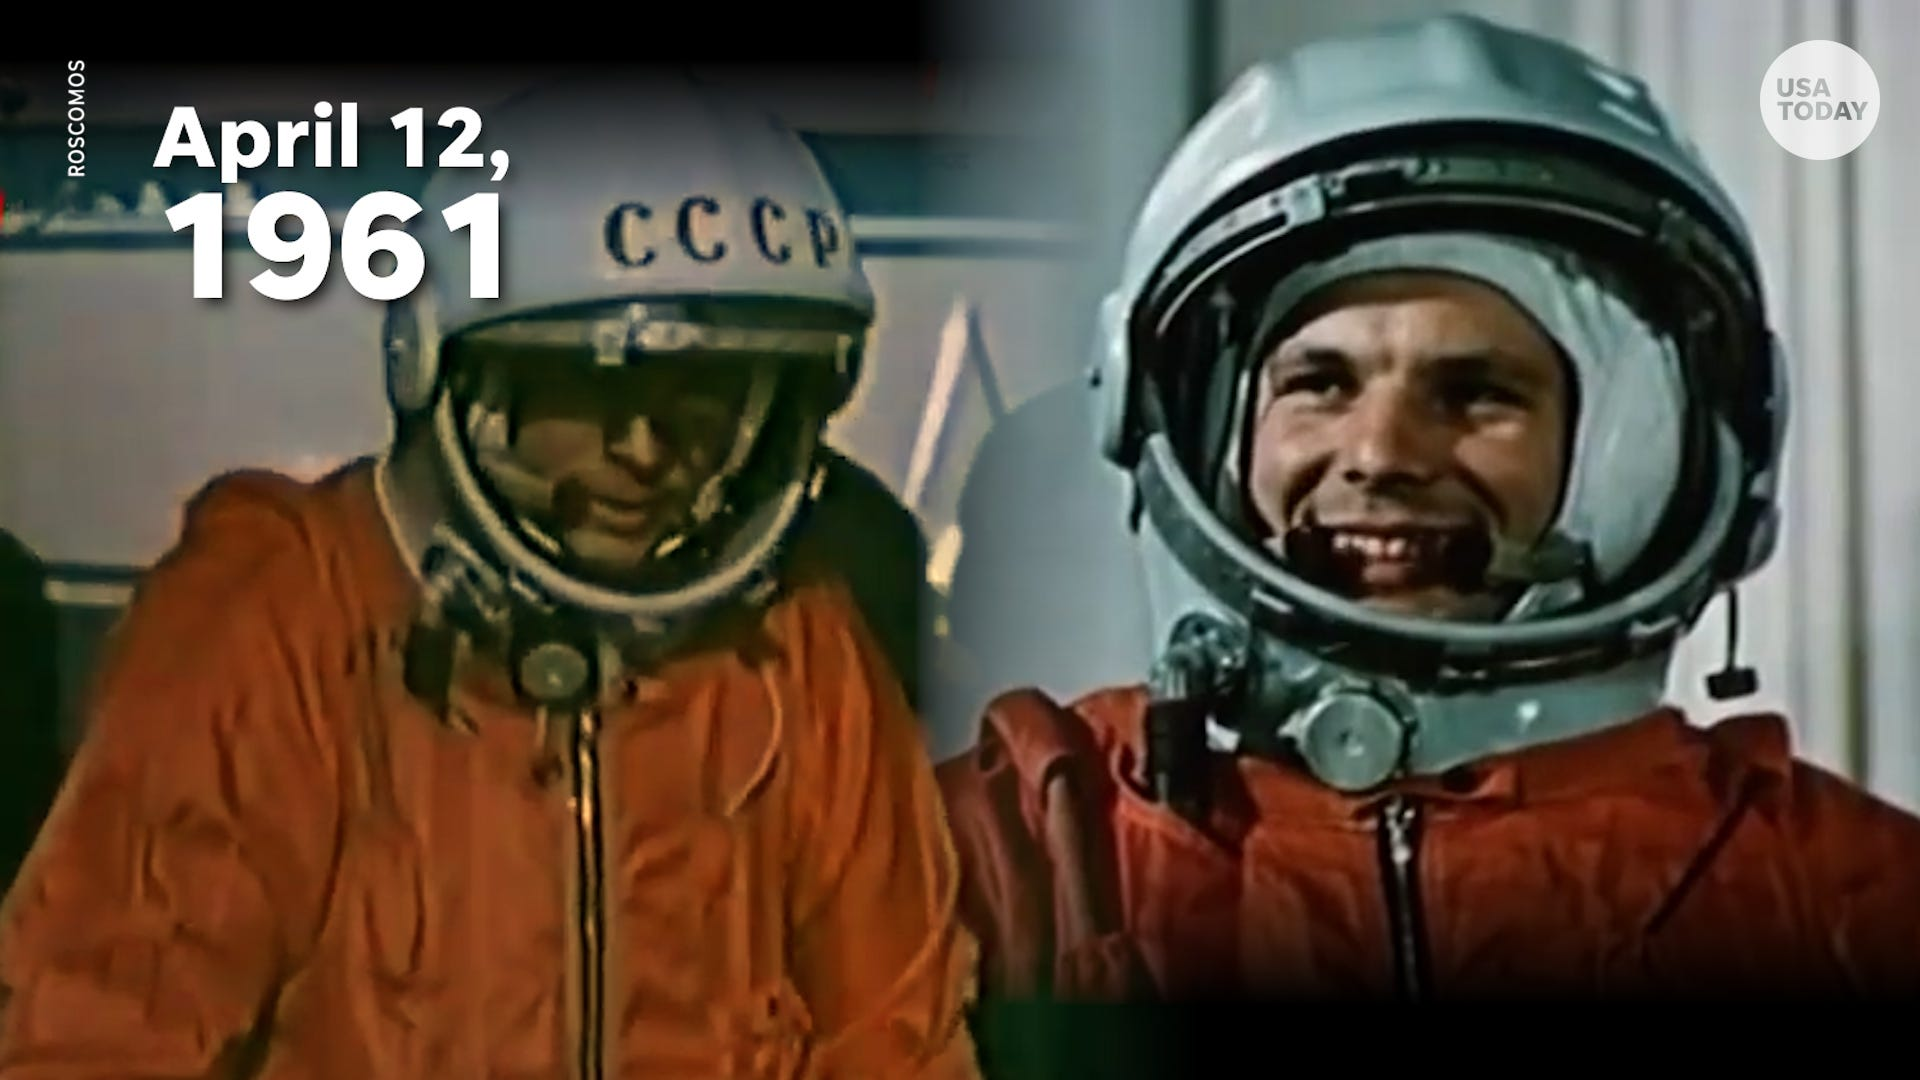 How the Soviets shocked the world by launching Yuri Gagarin as the first man into space